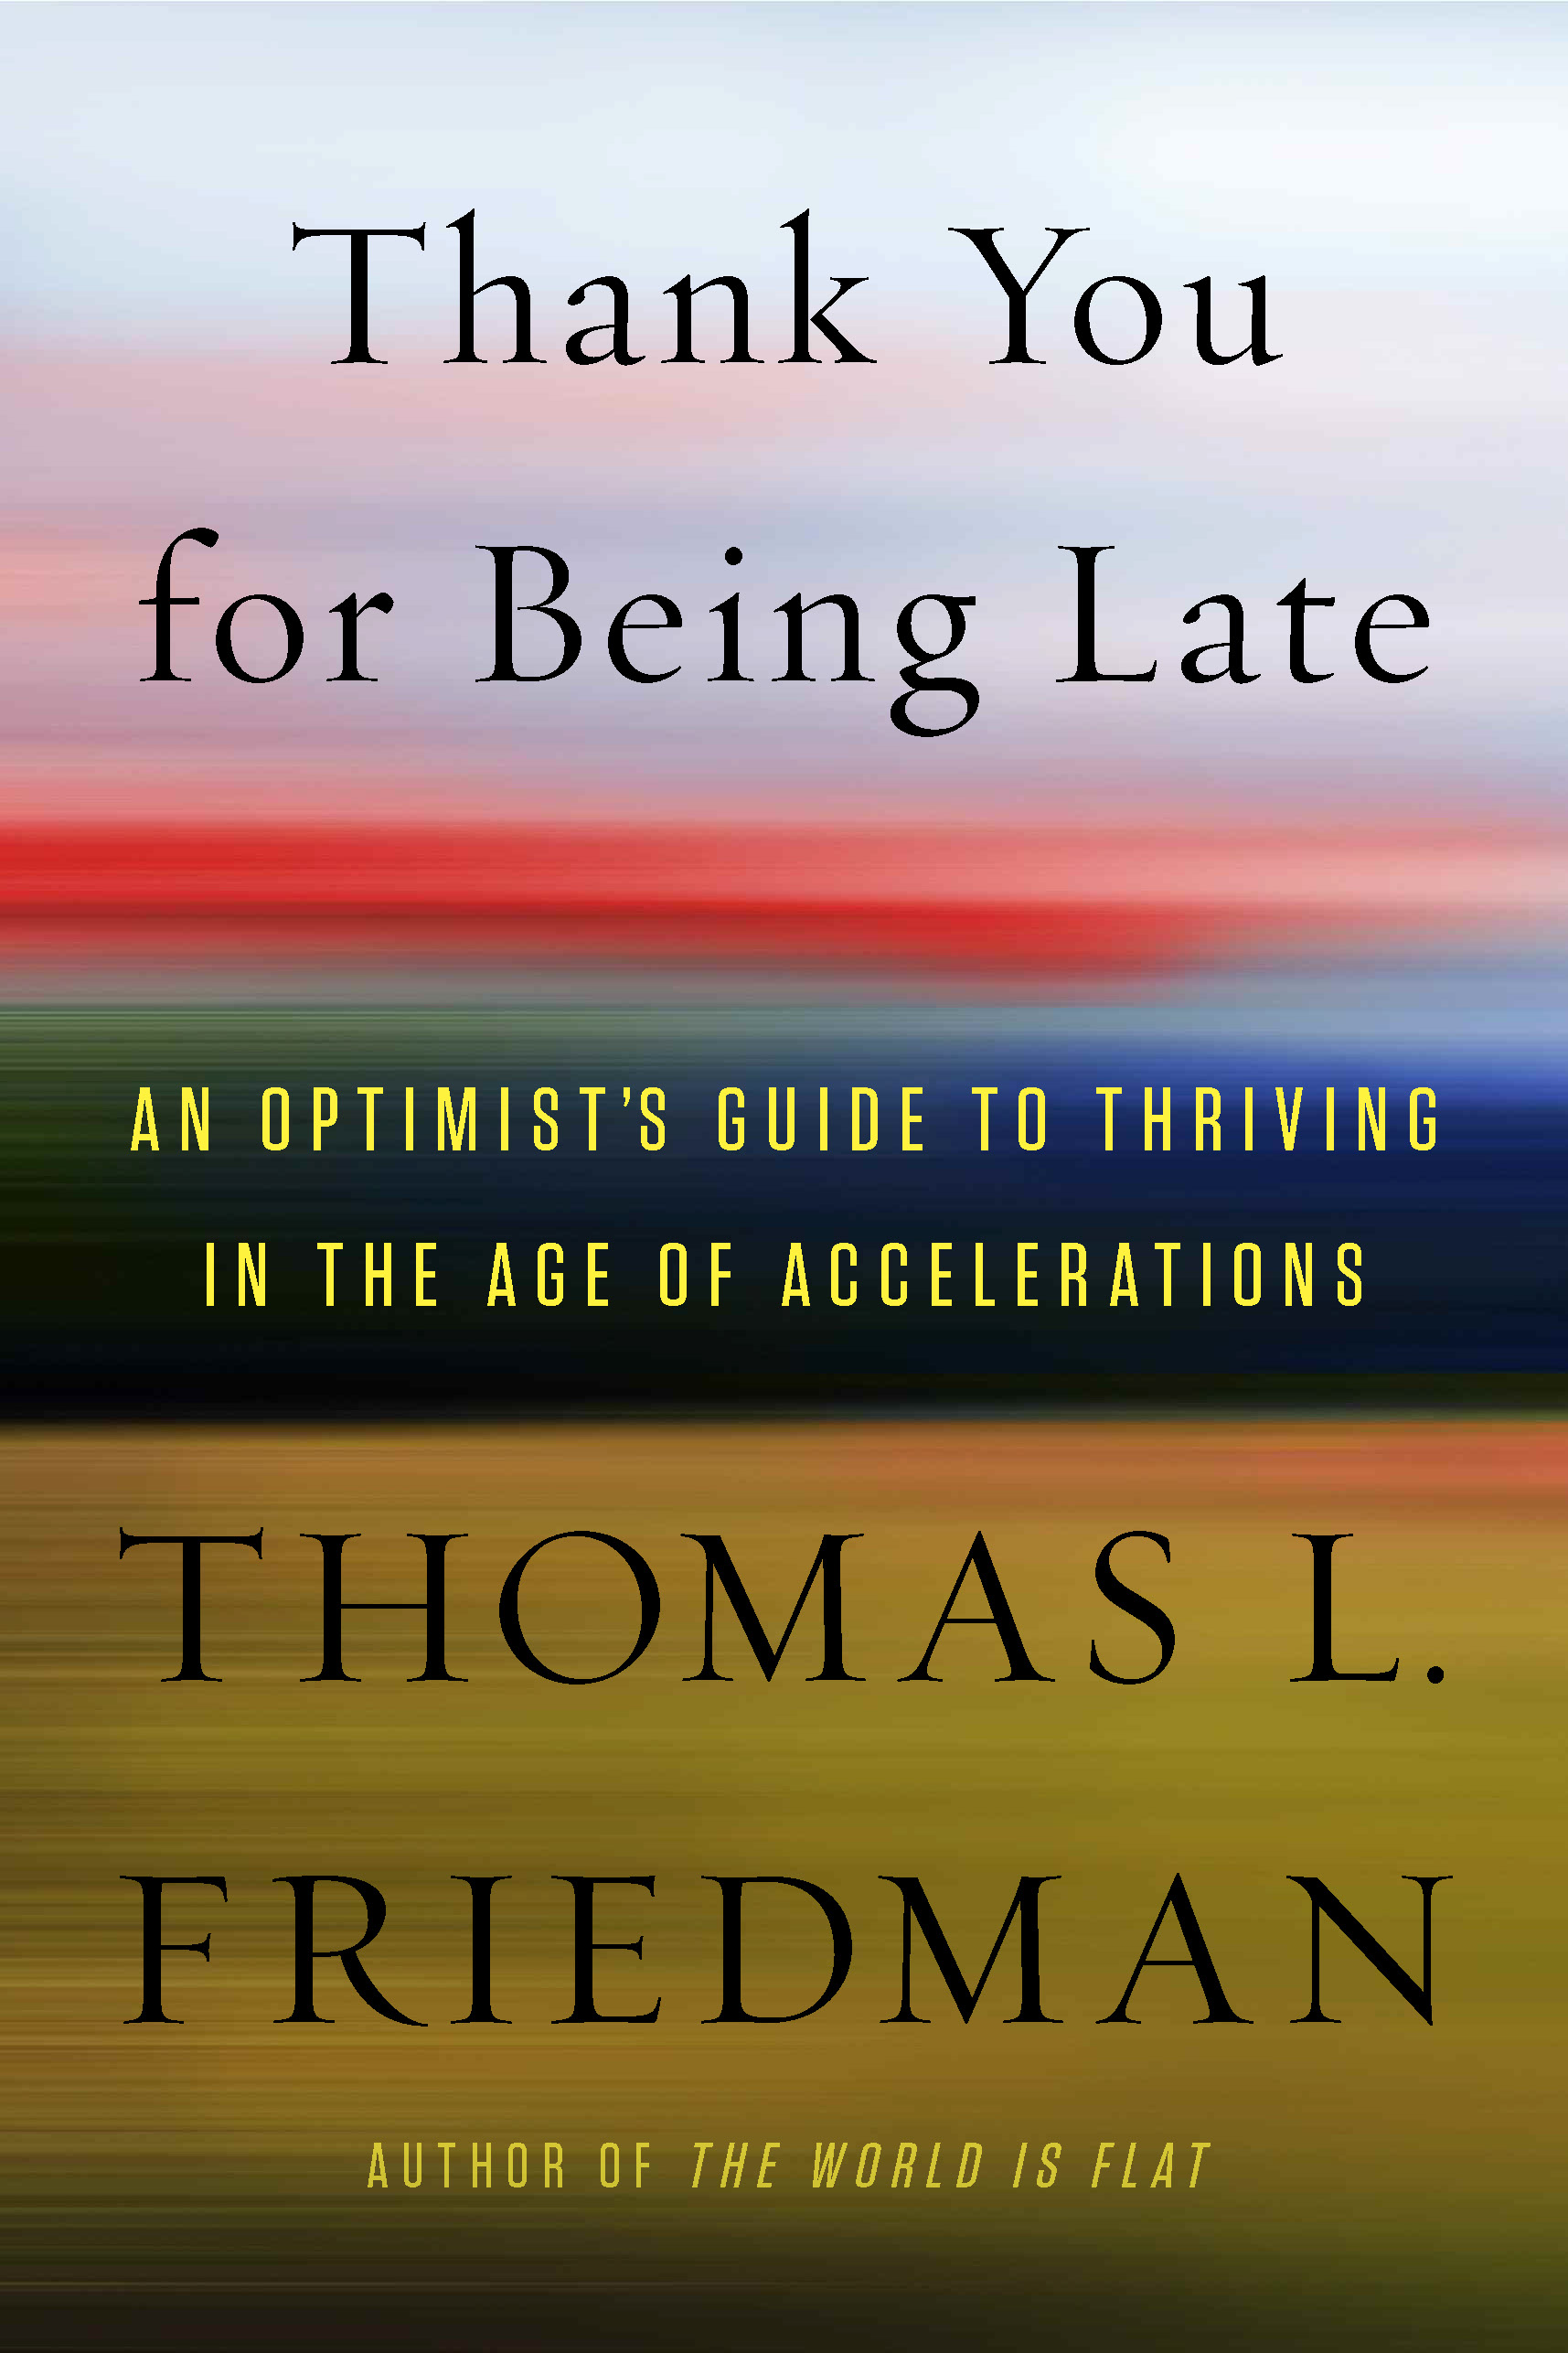 Thank You for Being Late [EBOOK] An Optimist's Guide to Thriving in the Age of Accelerations